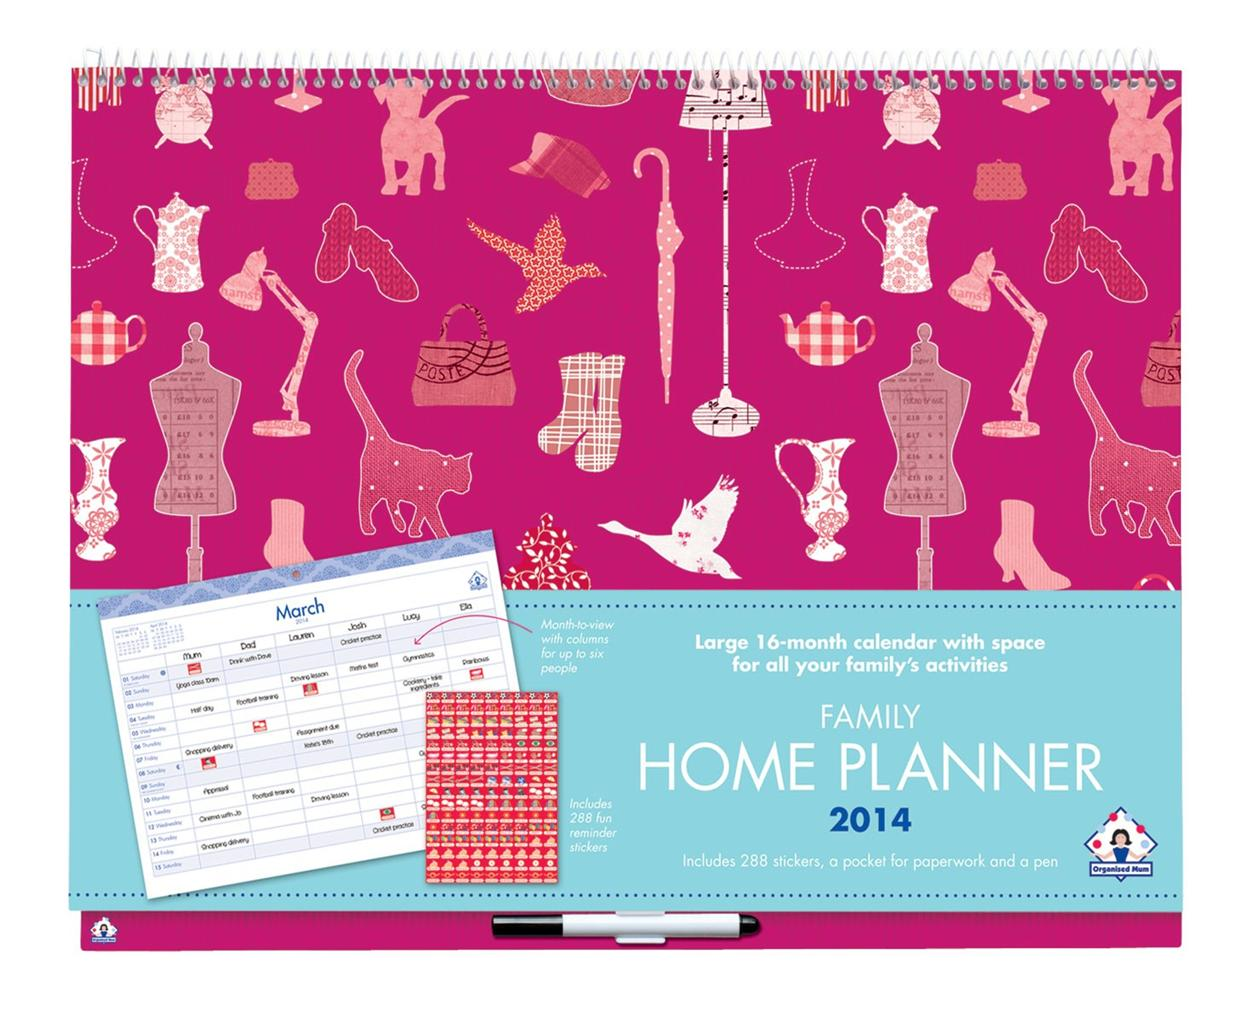 Calendar Home Planner : Organised mum family home planner calendar useful